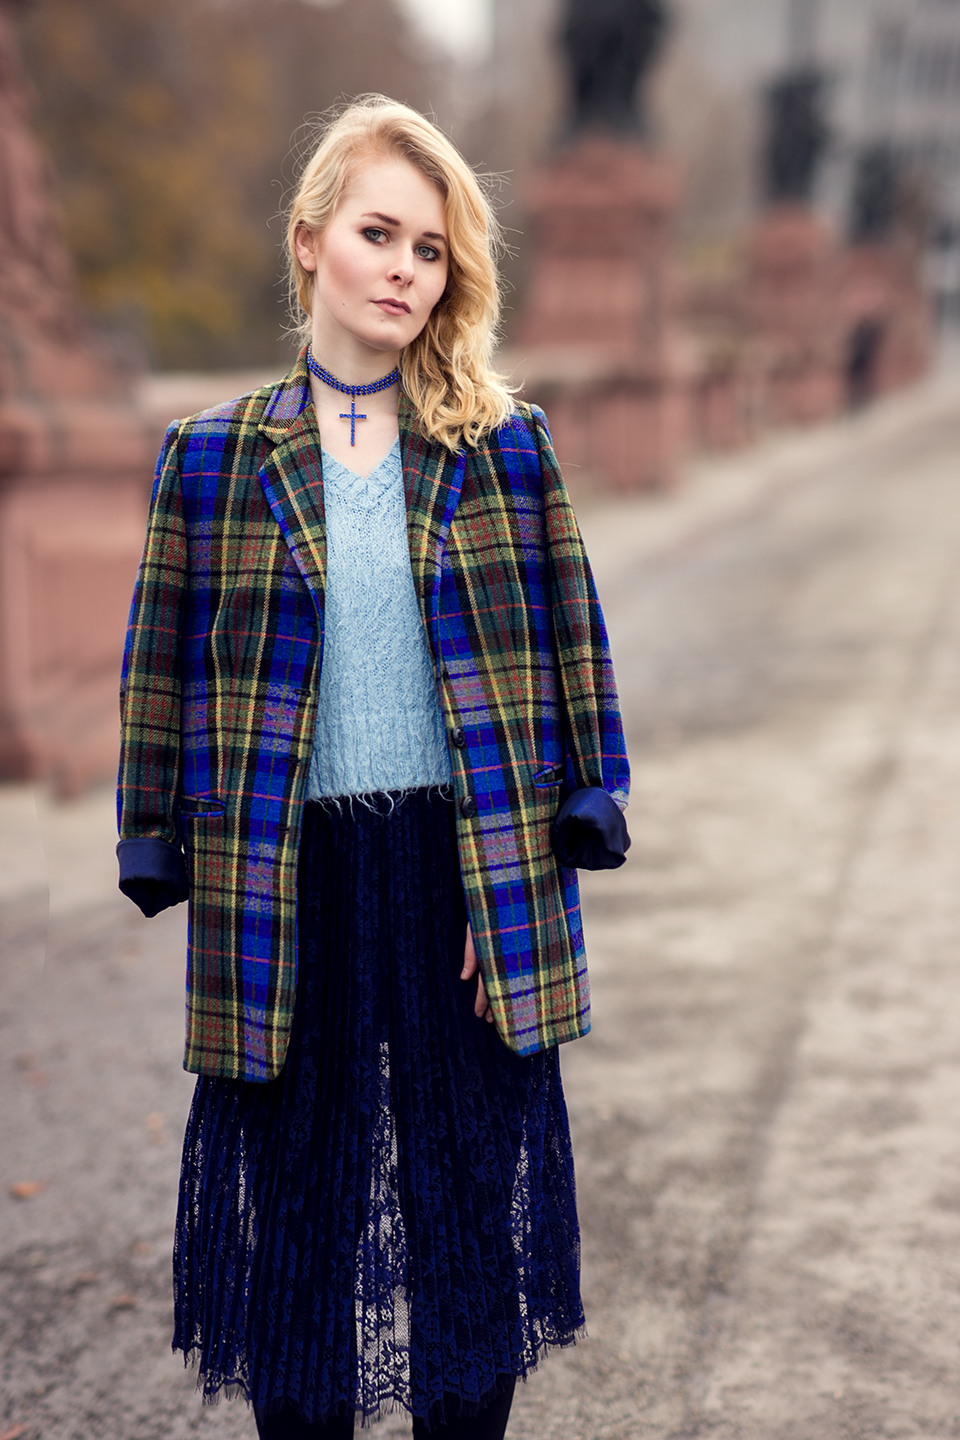 herbst-outfit-mit-spitzenrock-christina-key